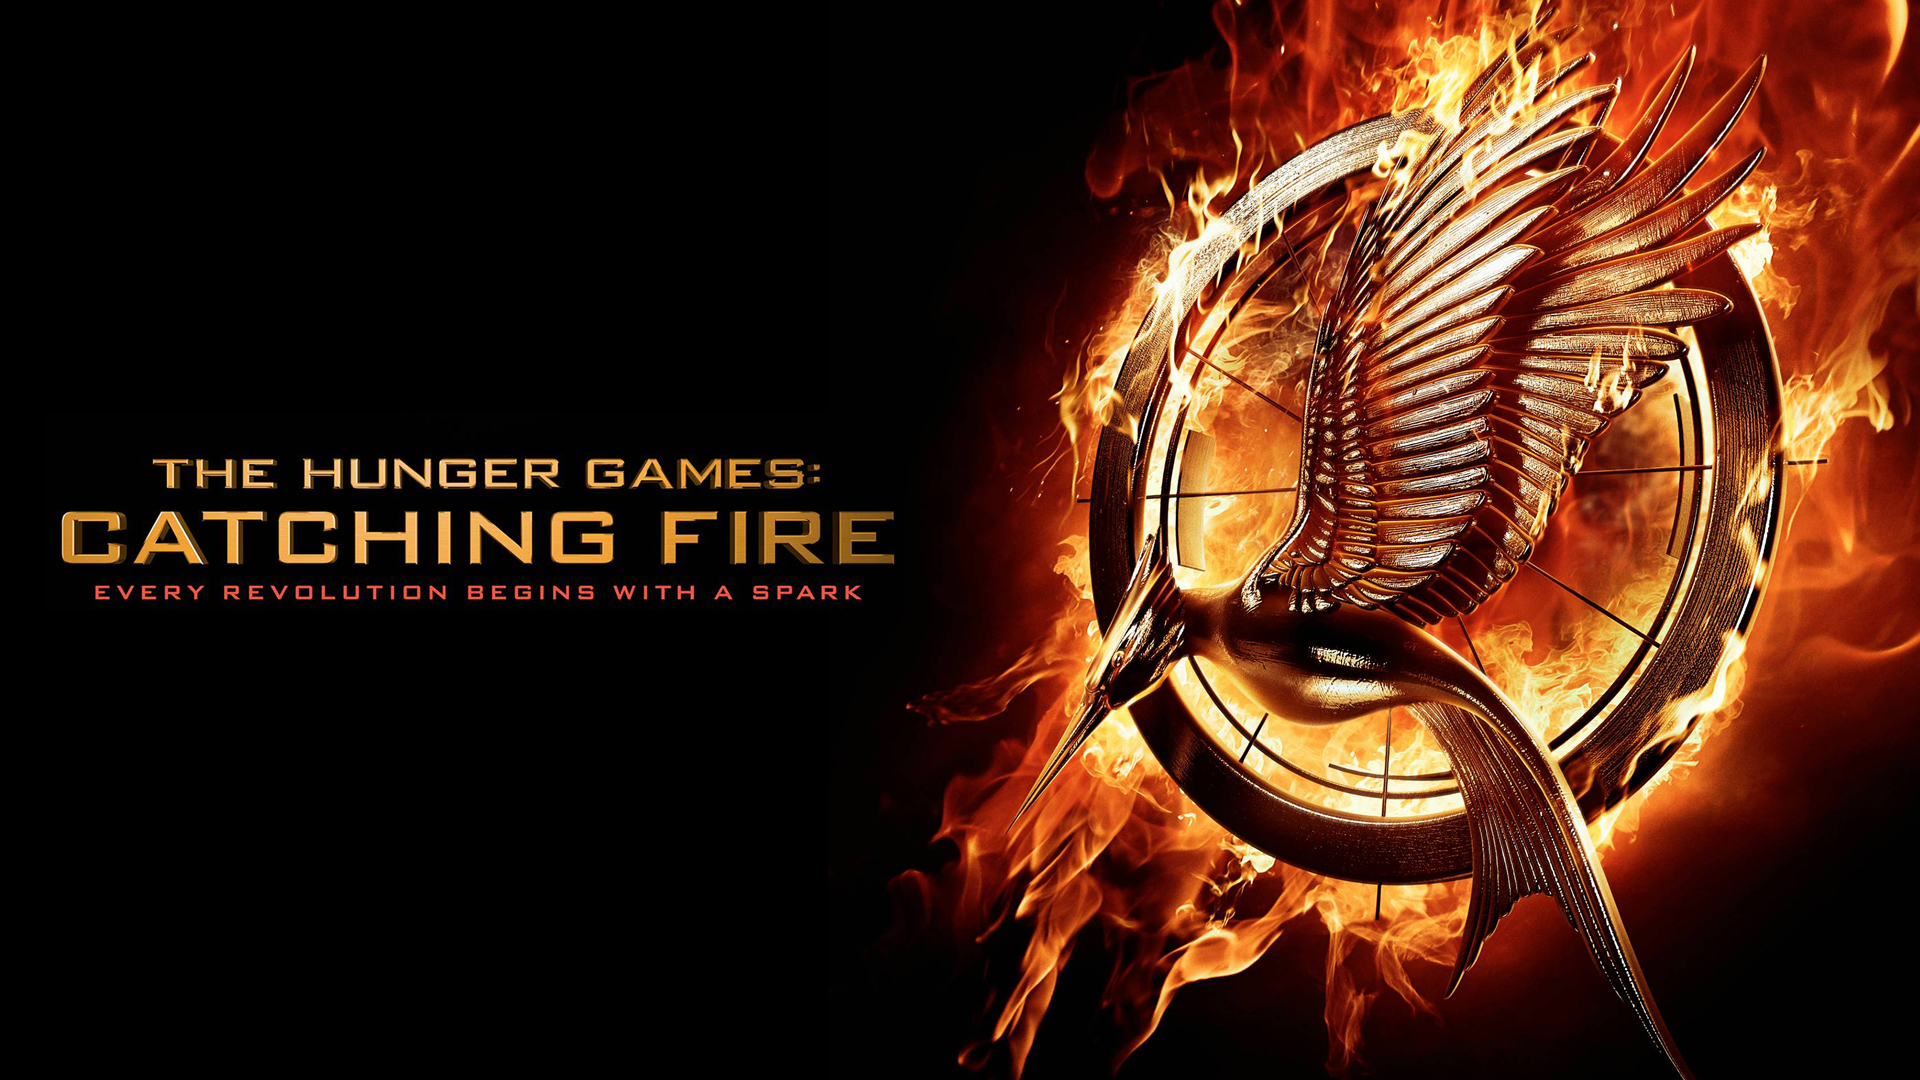 The hunger games catching fire 2013 oh that film blog hungergamescatchingfirespark1920x1080 biocorpaavc Choice Image